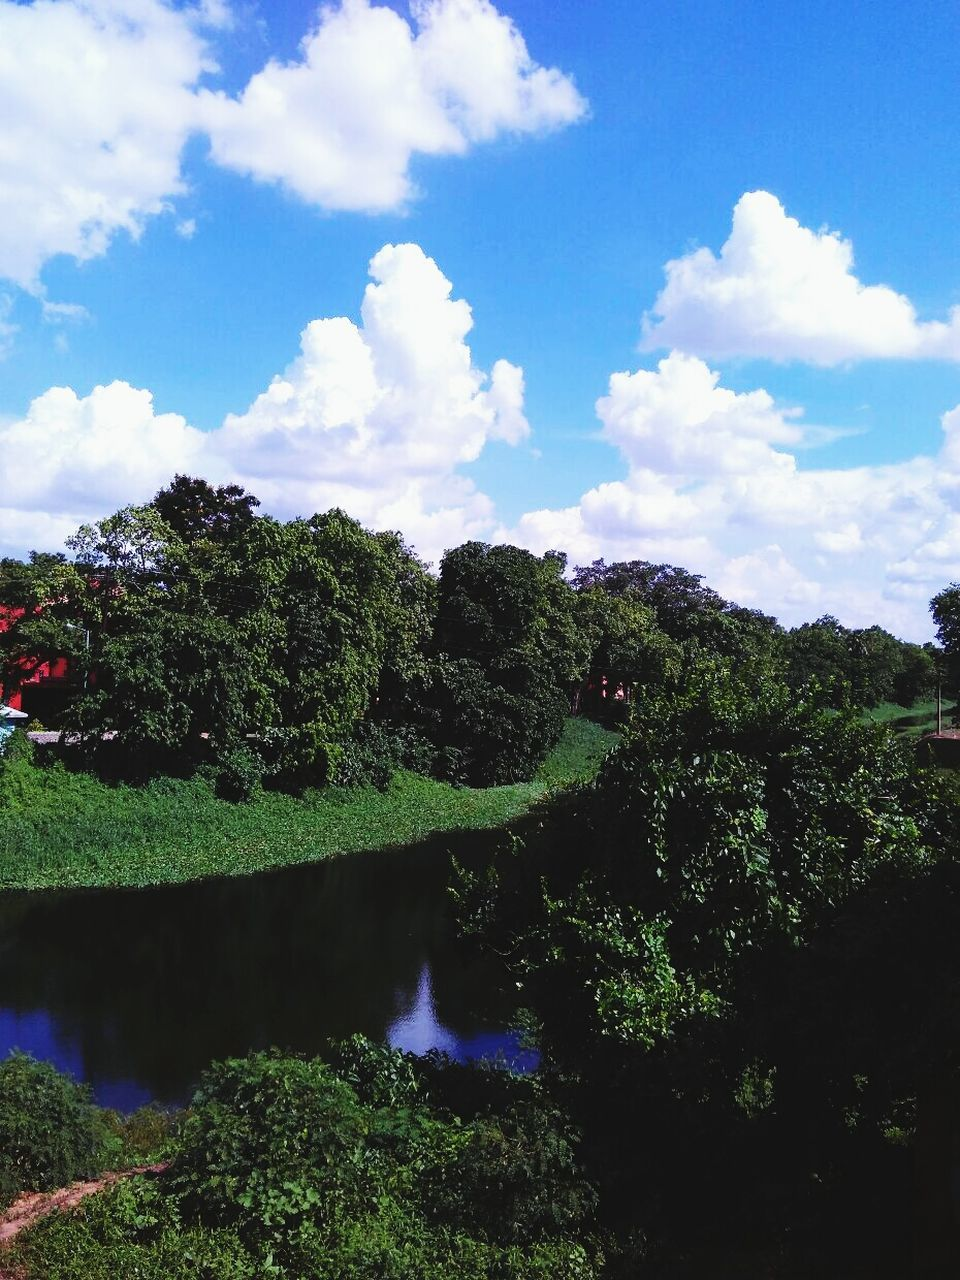 sky, tree, growth, nature, cloud - sky, beauty in nature, tranquility, water, outdoors, scenics, day, no people